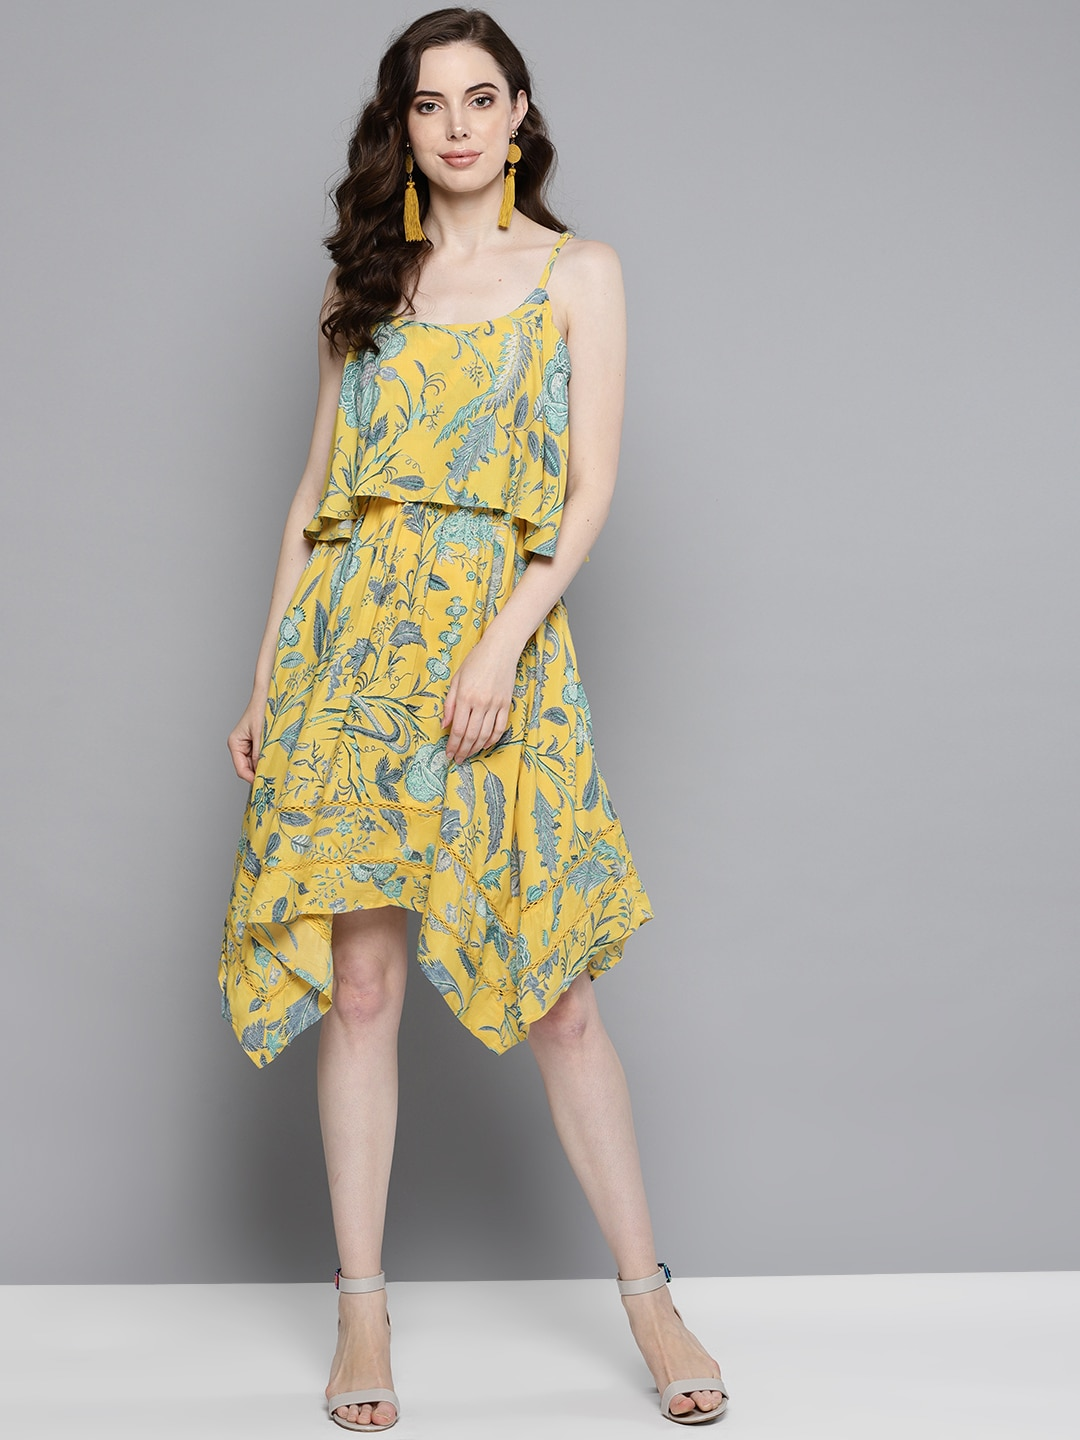 0221b3f3500 Ruffle Dresses - Buy Ruffle Dresses online in India